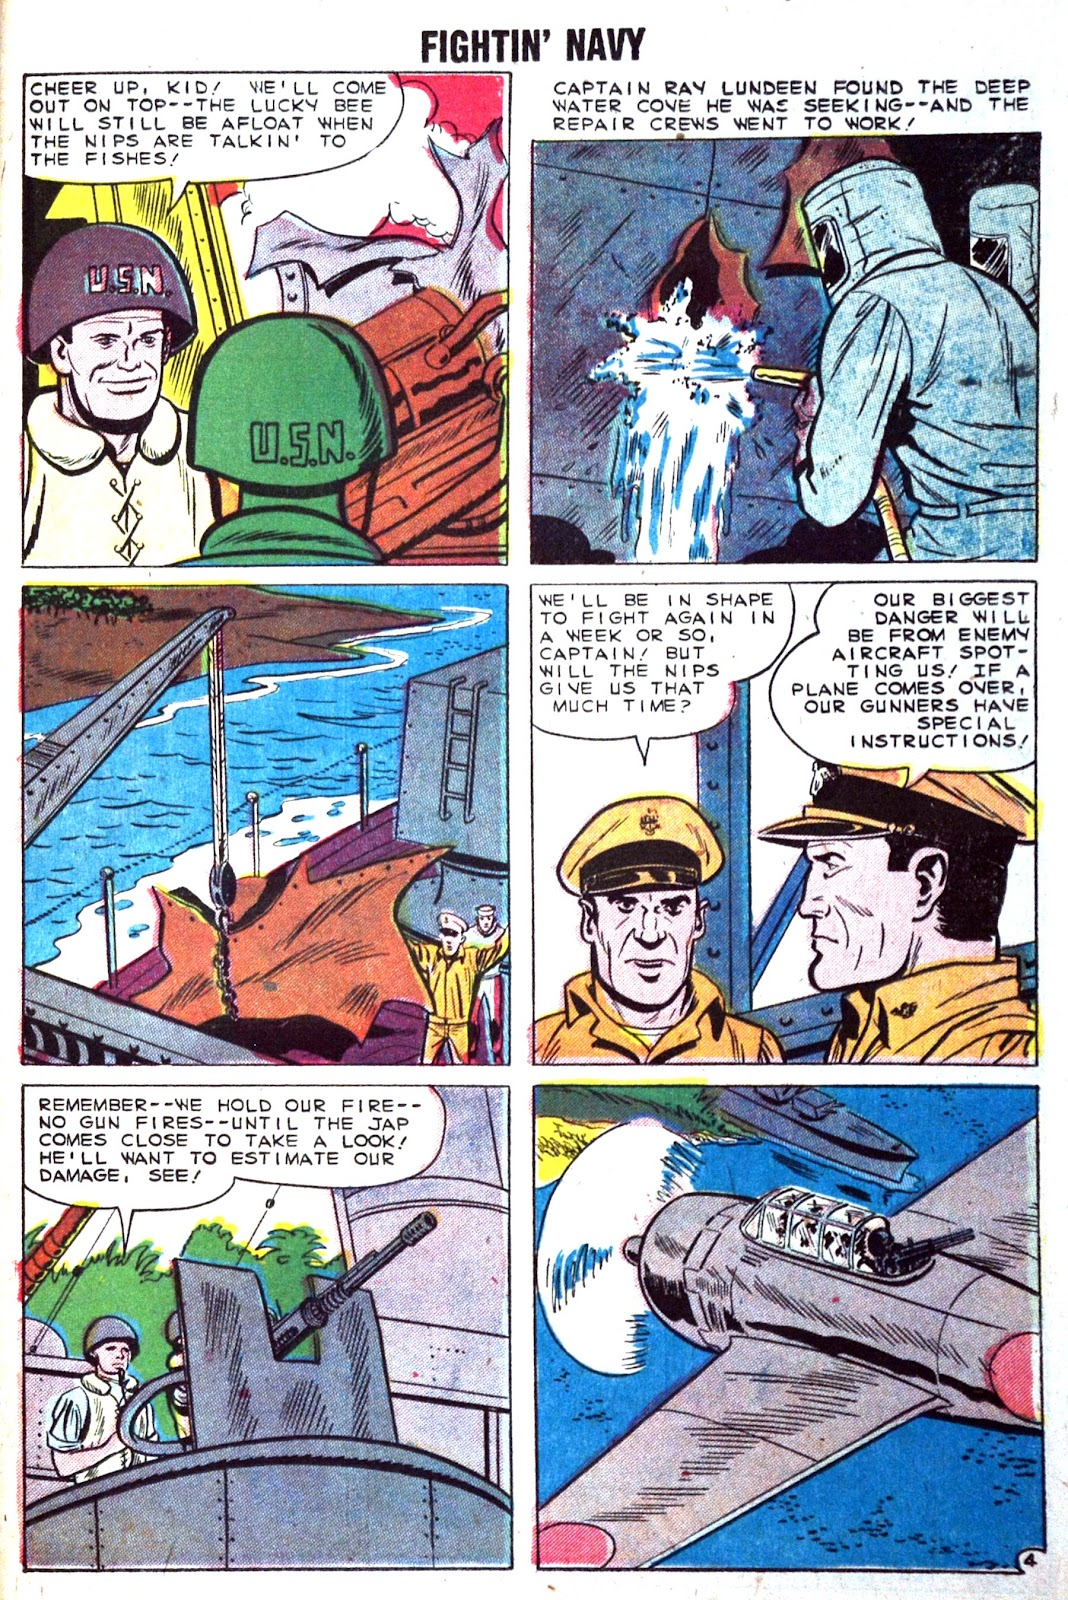 Read online Fightin' Navy comic -  Issue #89 - 23